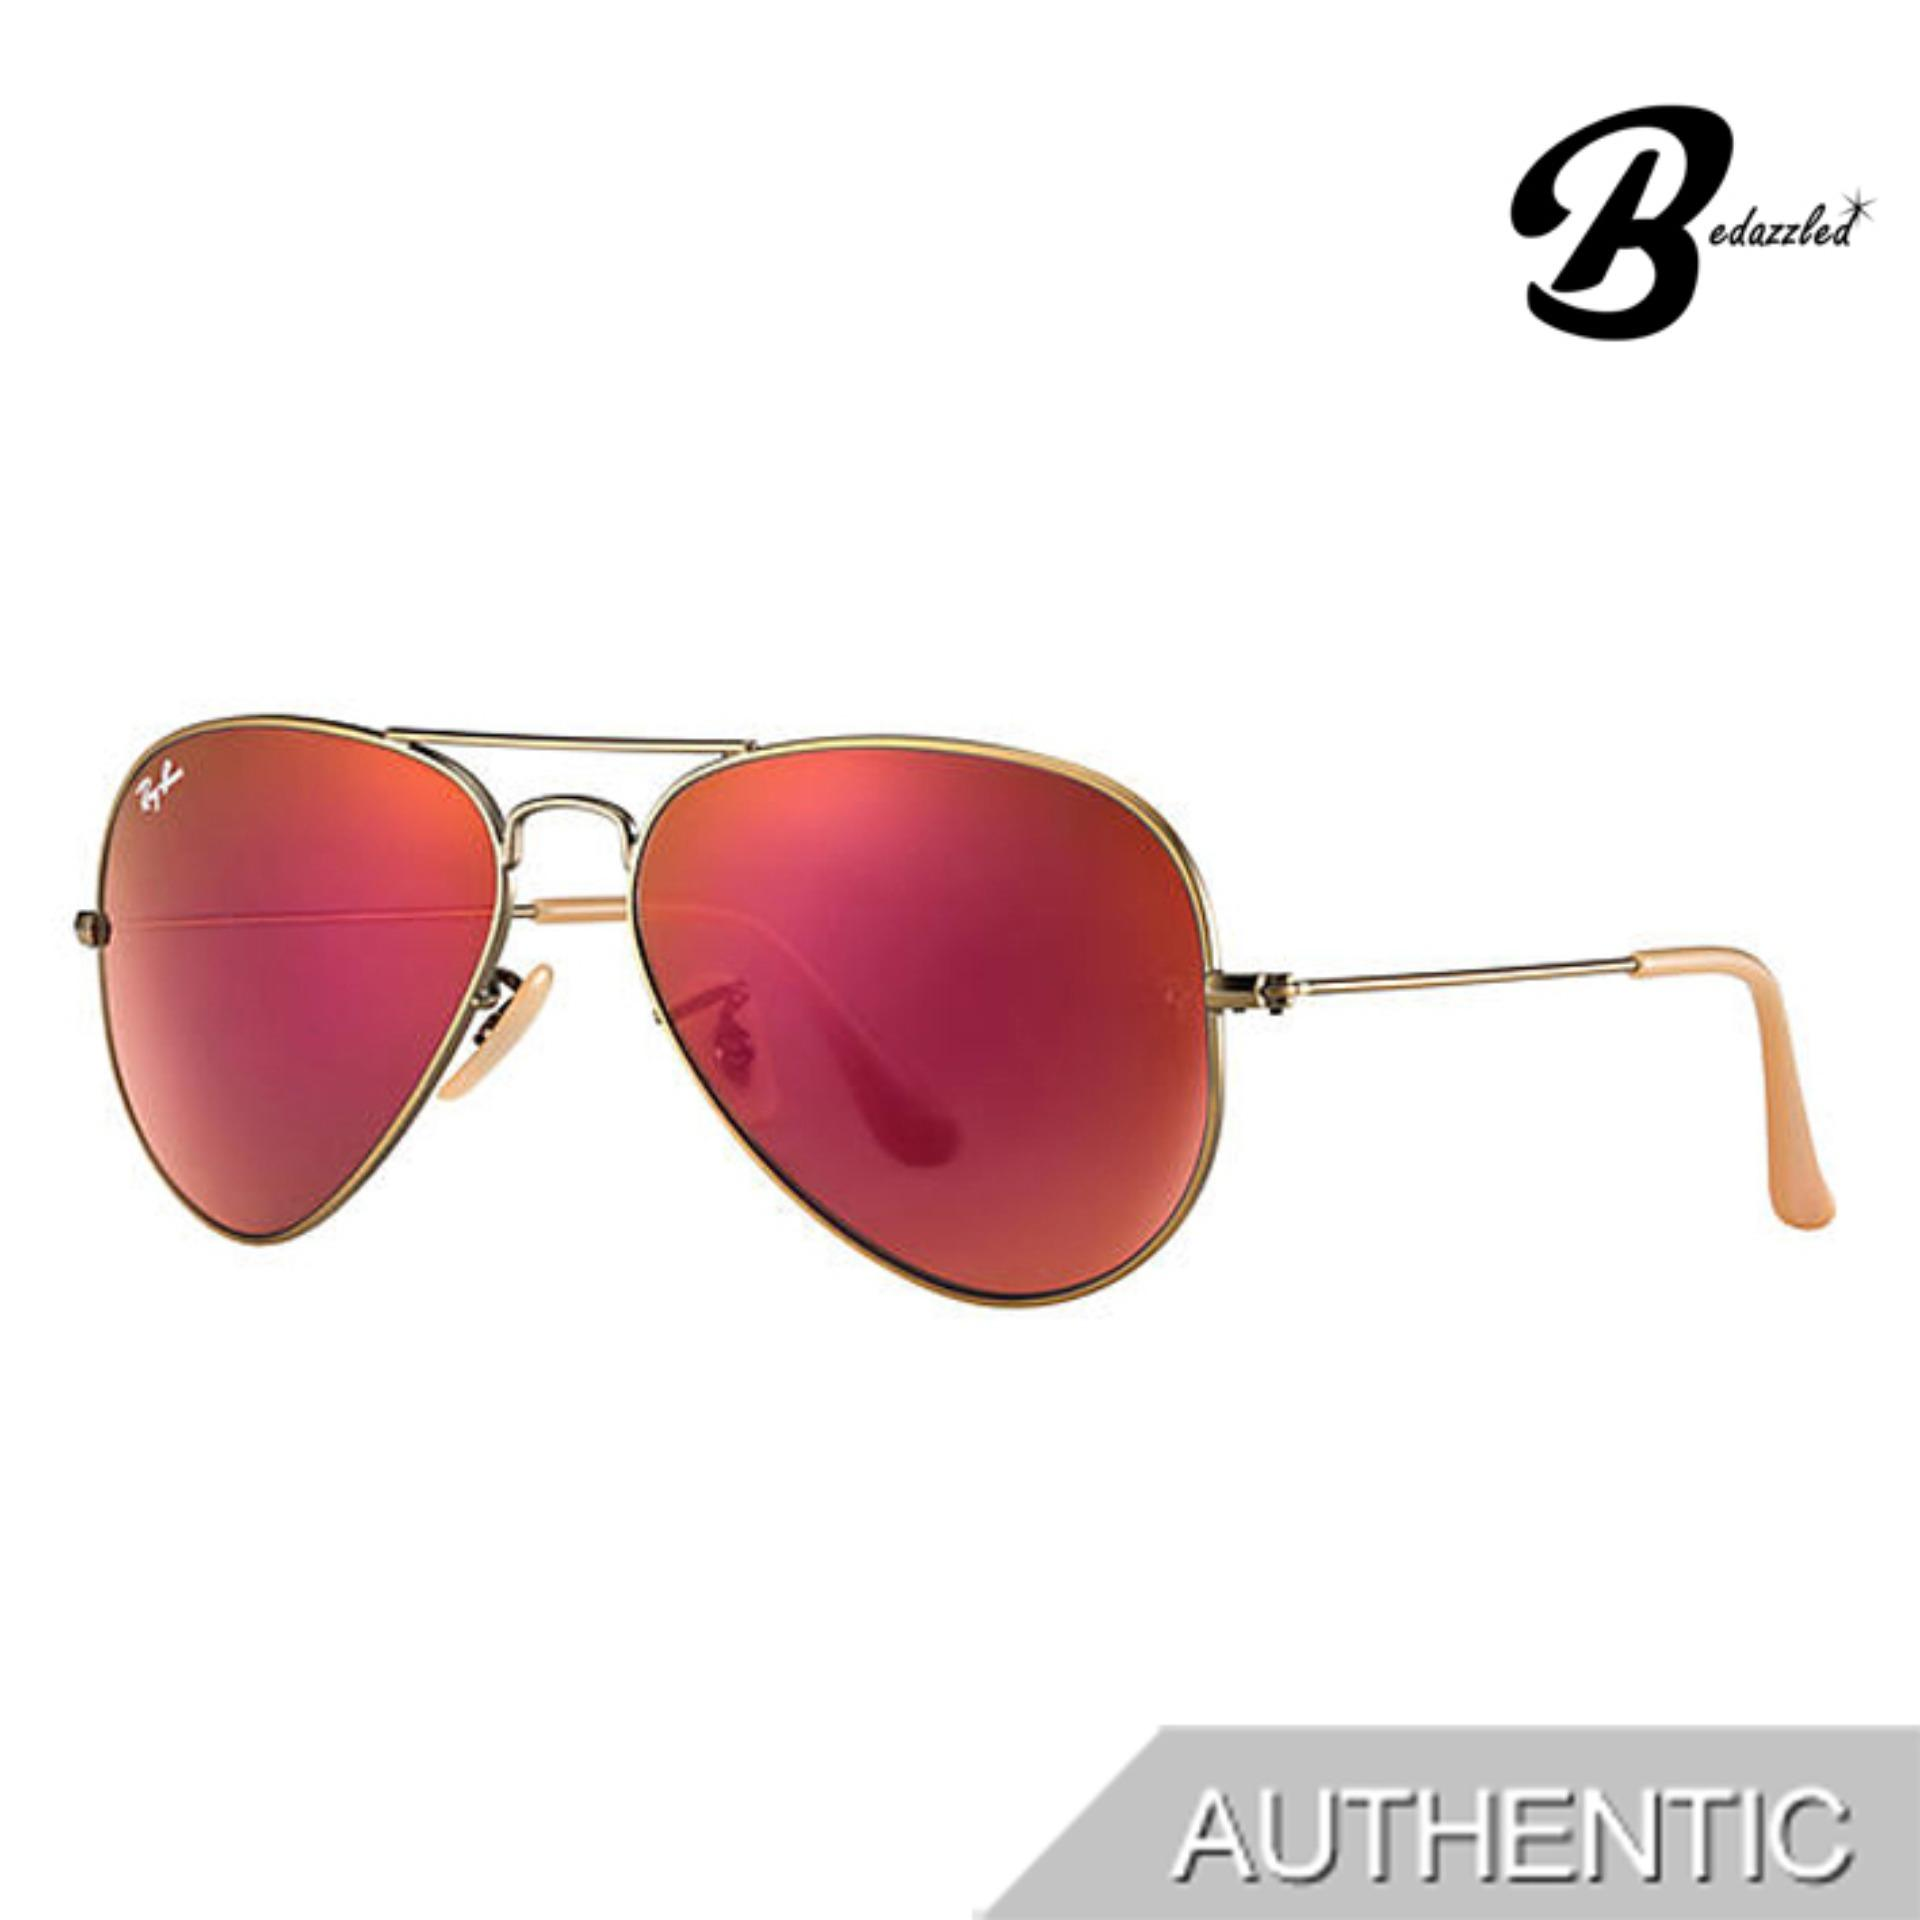 Ray-Ban Aviator Flash Lenses 0rb3025167/2k58 By Bedazzled.